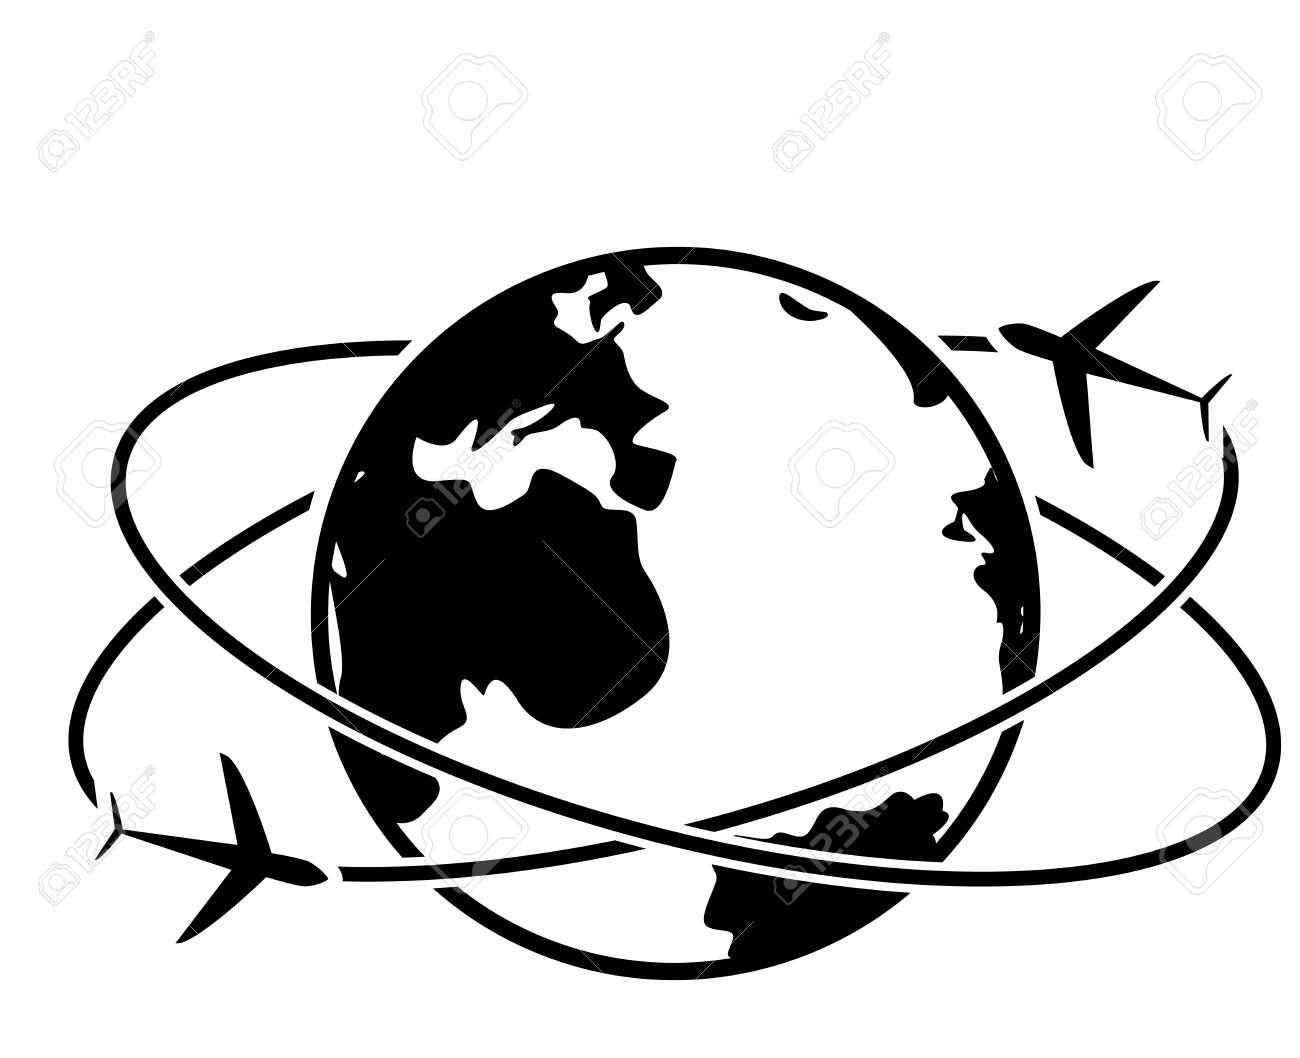 travel around the world icon vector symbol royalty free cliparts rh 123rf com globe icon vector png globe icon vector png